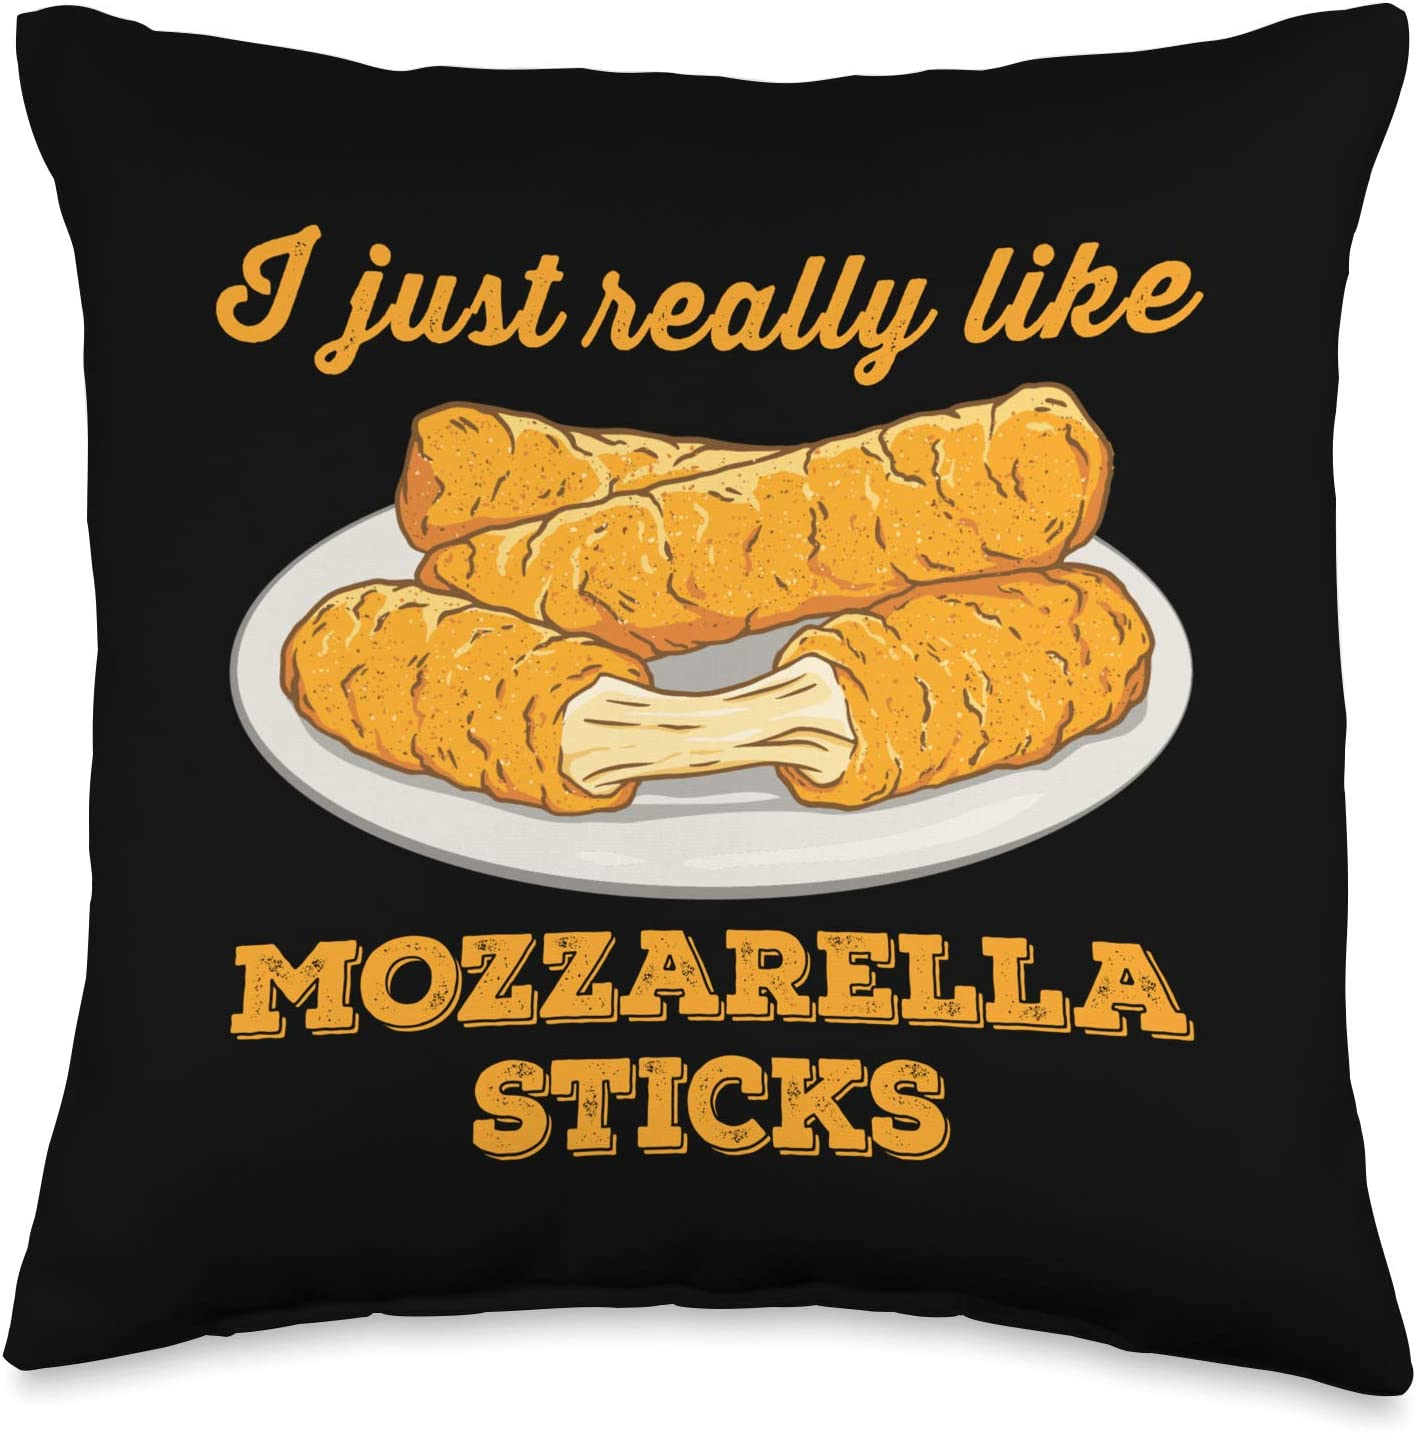 Italian Fast Food Cheese lover Gifts I Just Really Like Mozzarella Sticks Throw Pillow, 16x16, Multicolor